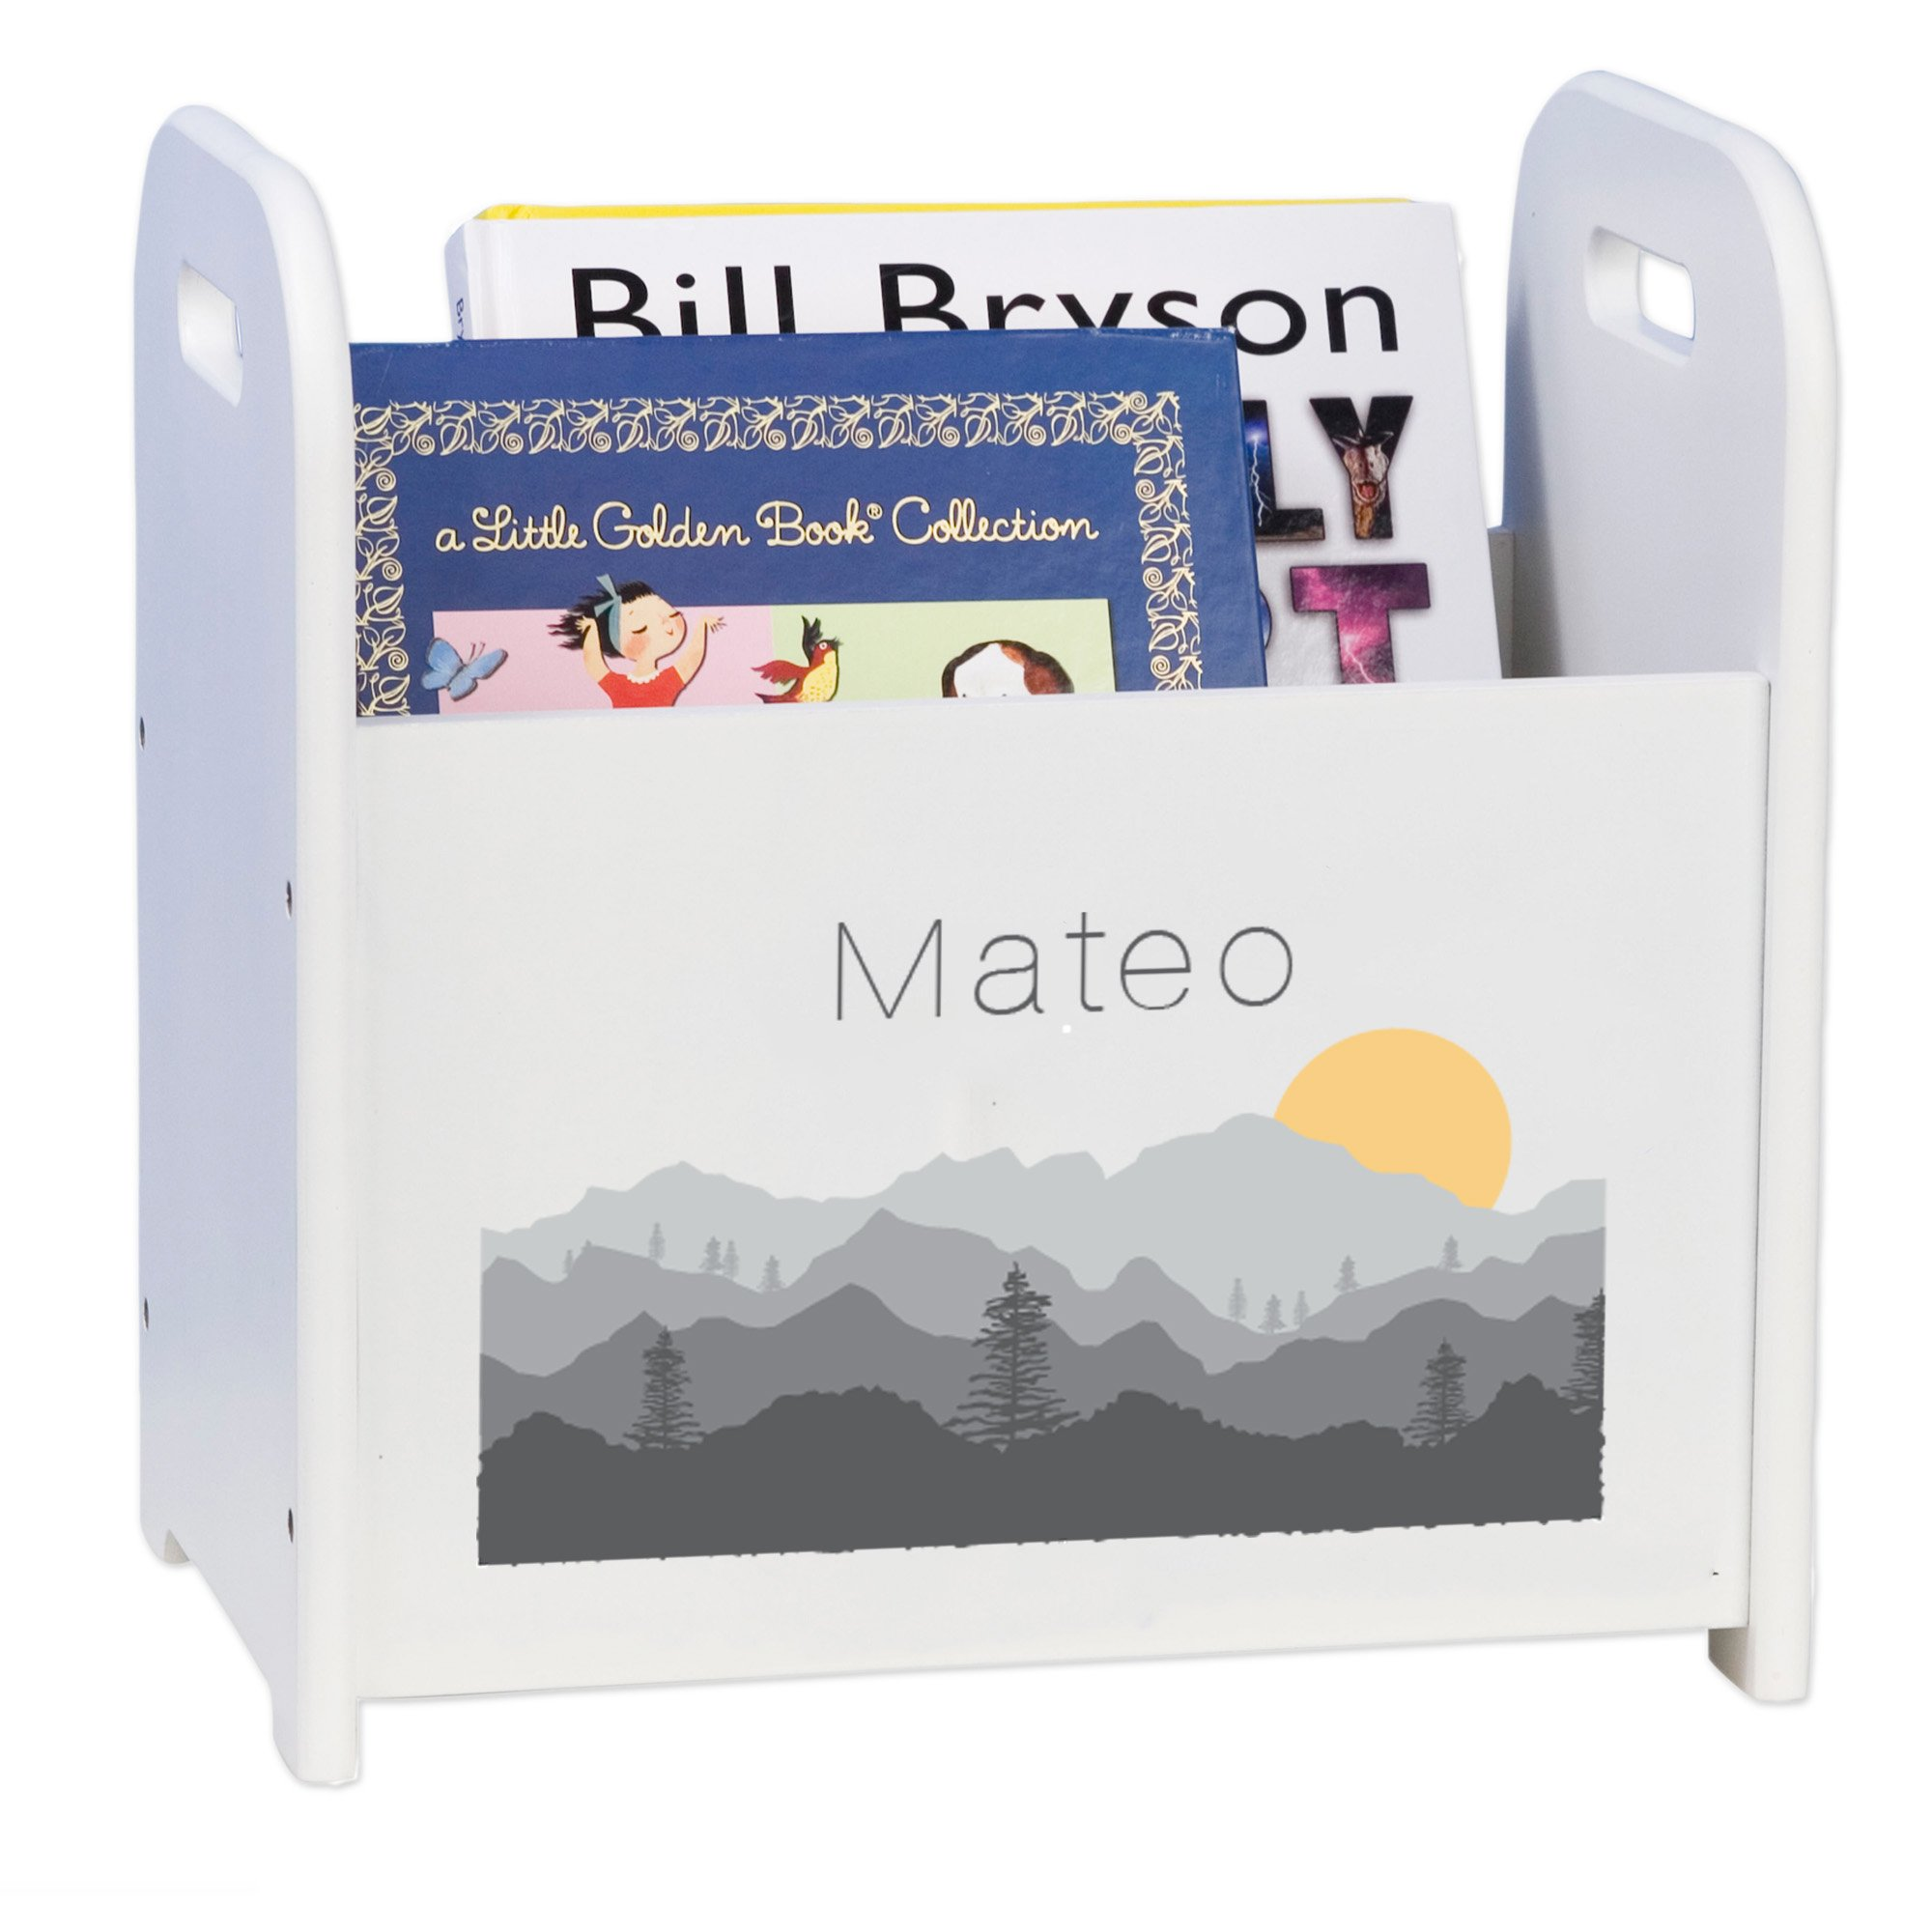 MyBambino Personalized Book Caddy and Storage with Misty Mountain Design